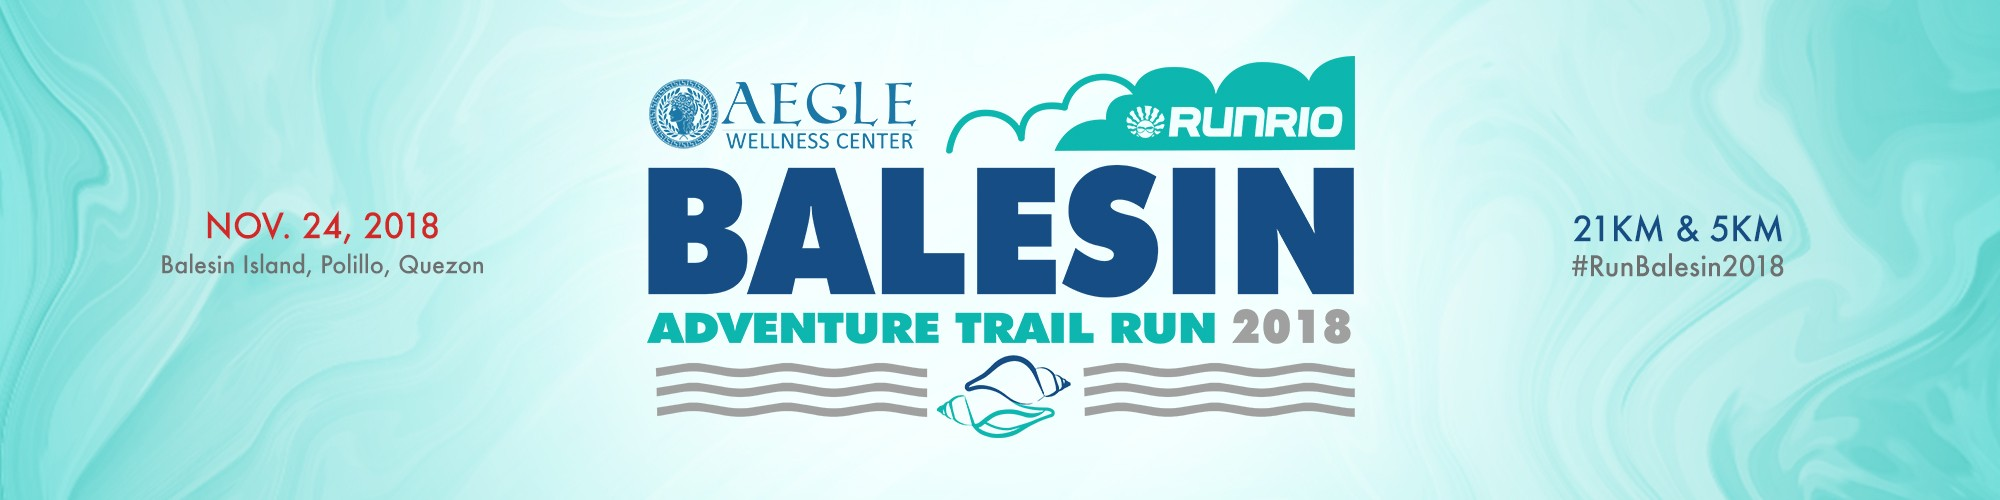 Balesin Adventure Trail Run 2018